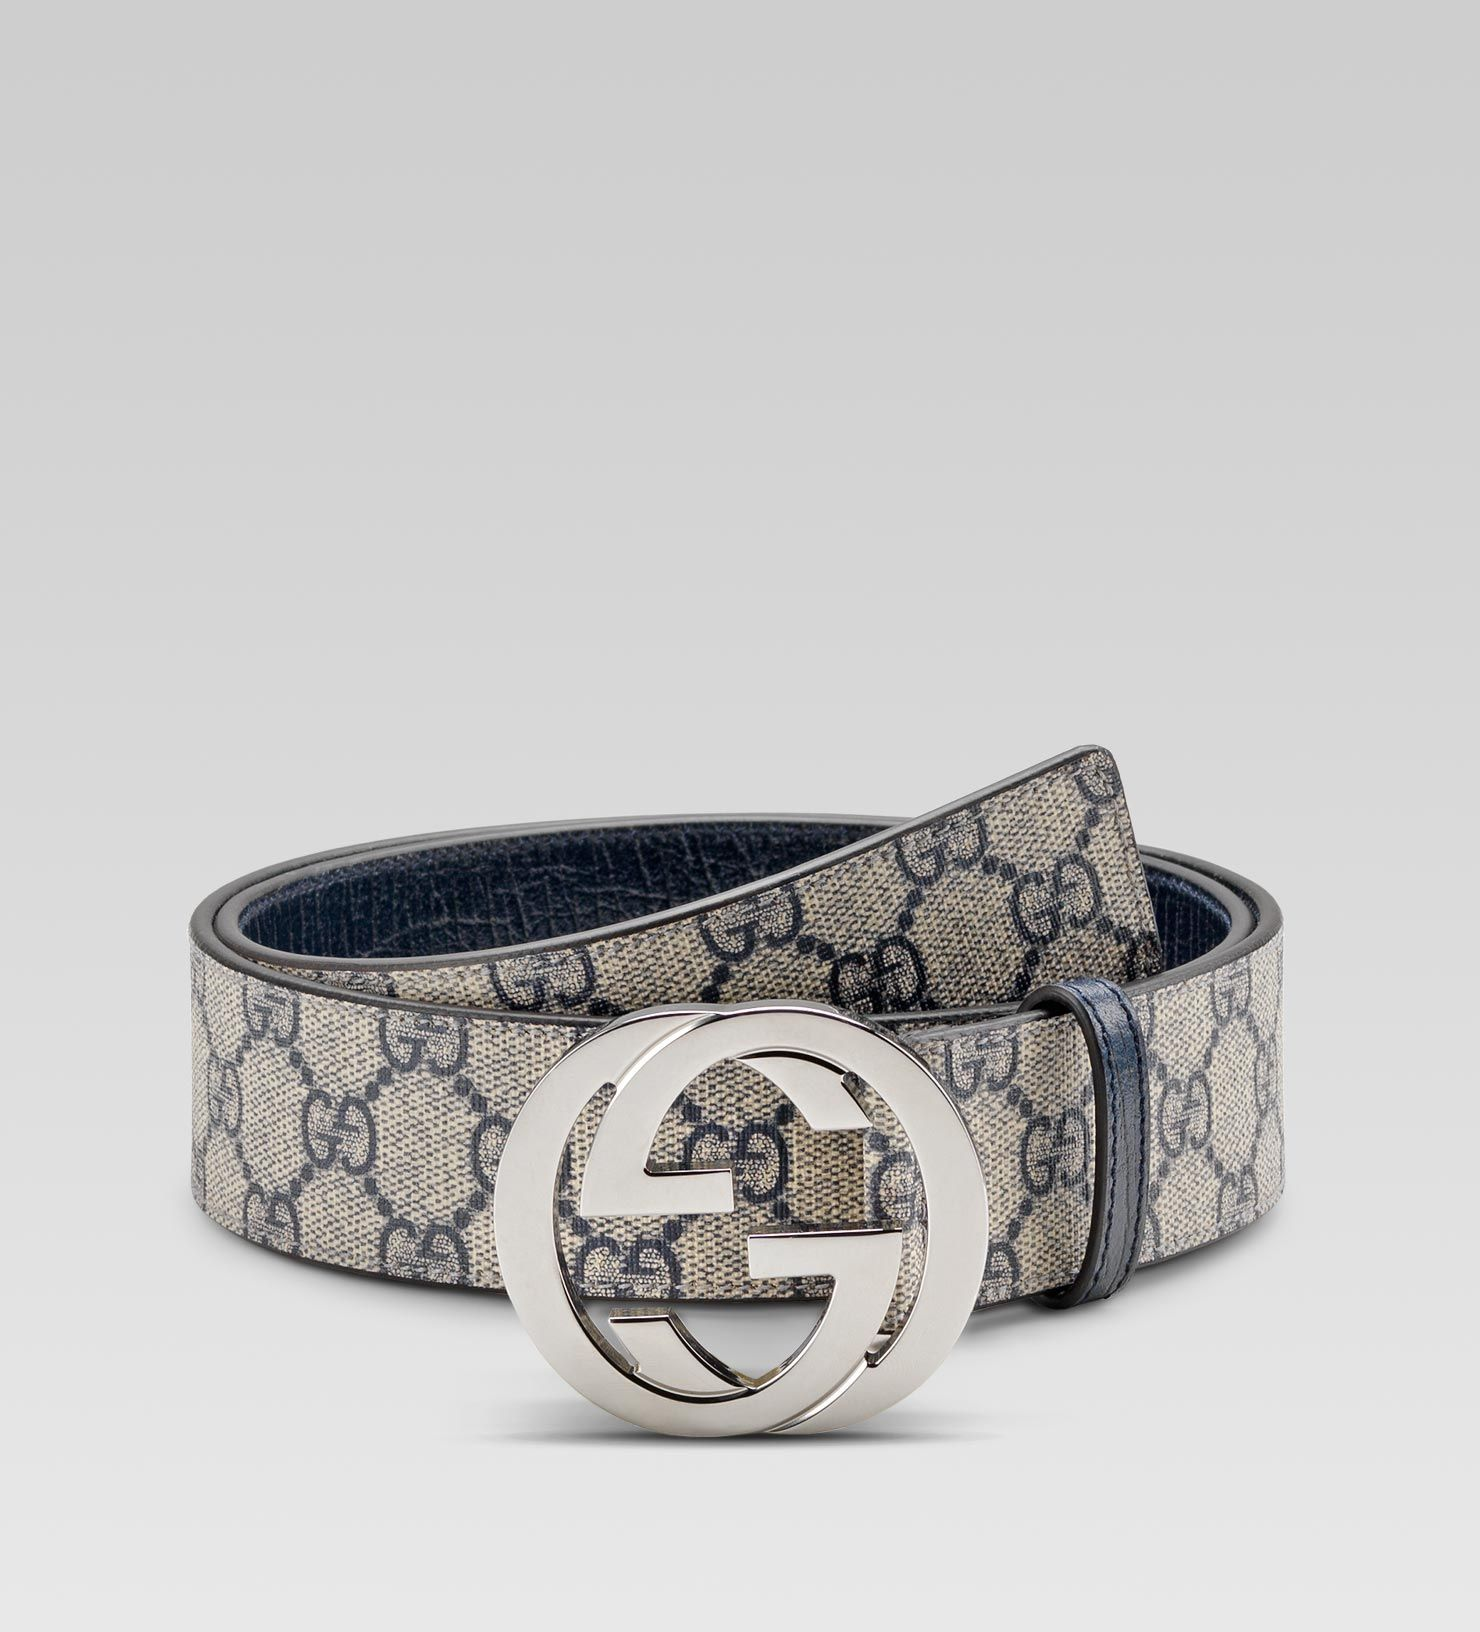 6f38a19e8bf GG Supreme belt with interlocking G